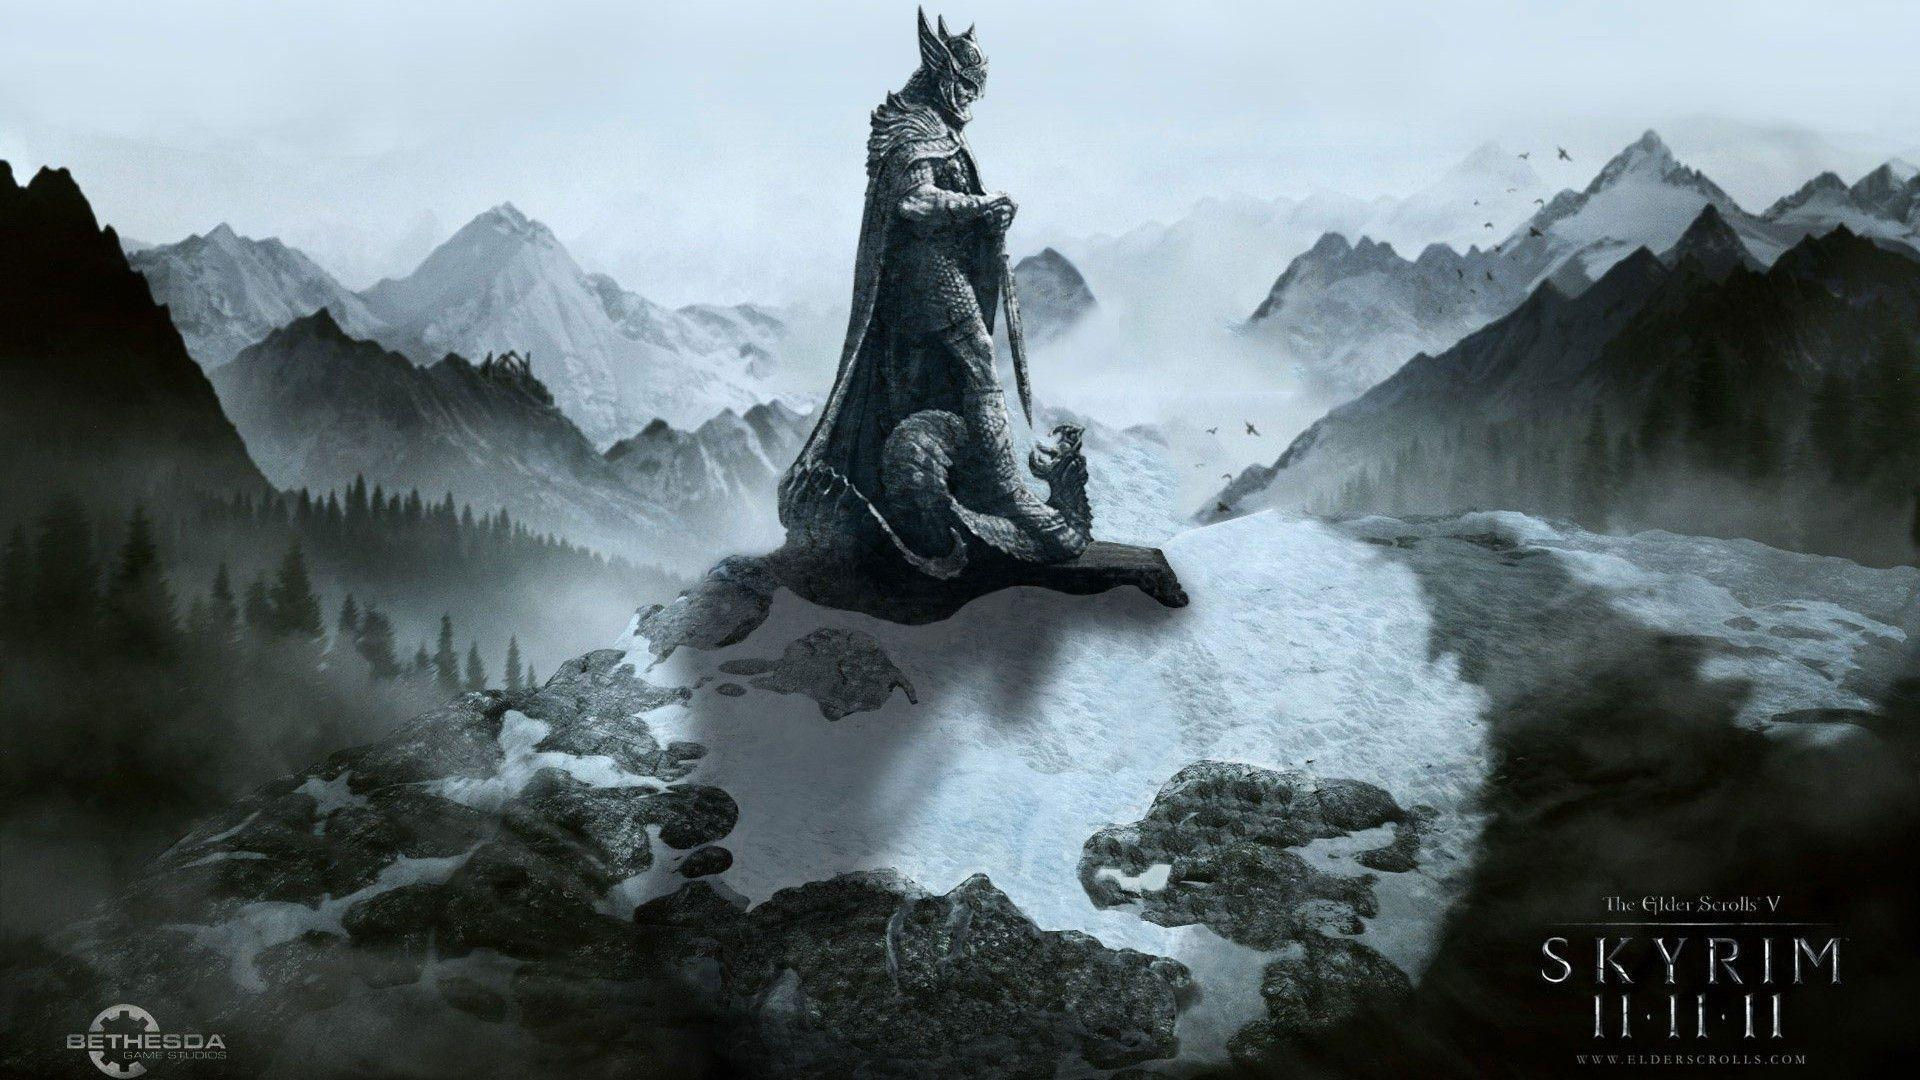 skyrim hd wallpapers 1366x768 - photo #22